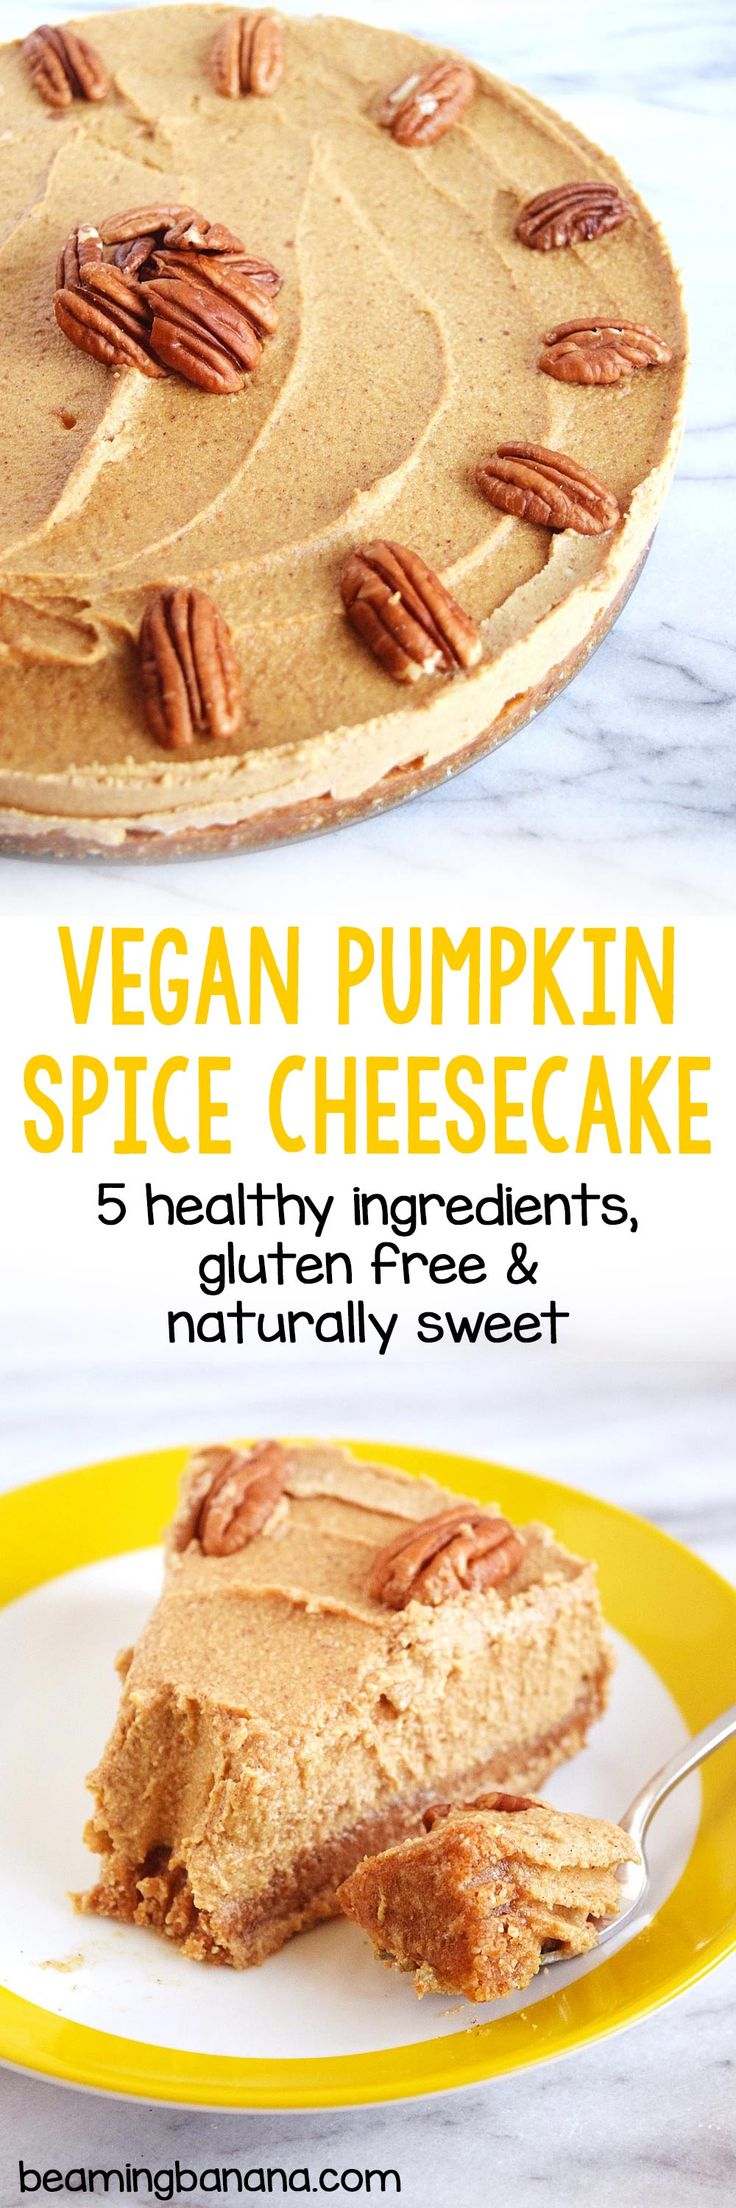 Rich, creamy vegan pumpkin spice cheesecake is a super easy but impressive dessert for your holiday parties! This cheesecake is made with just 5 healthy ingredients, gluten free and naturally sweetened.